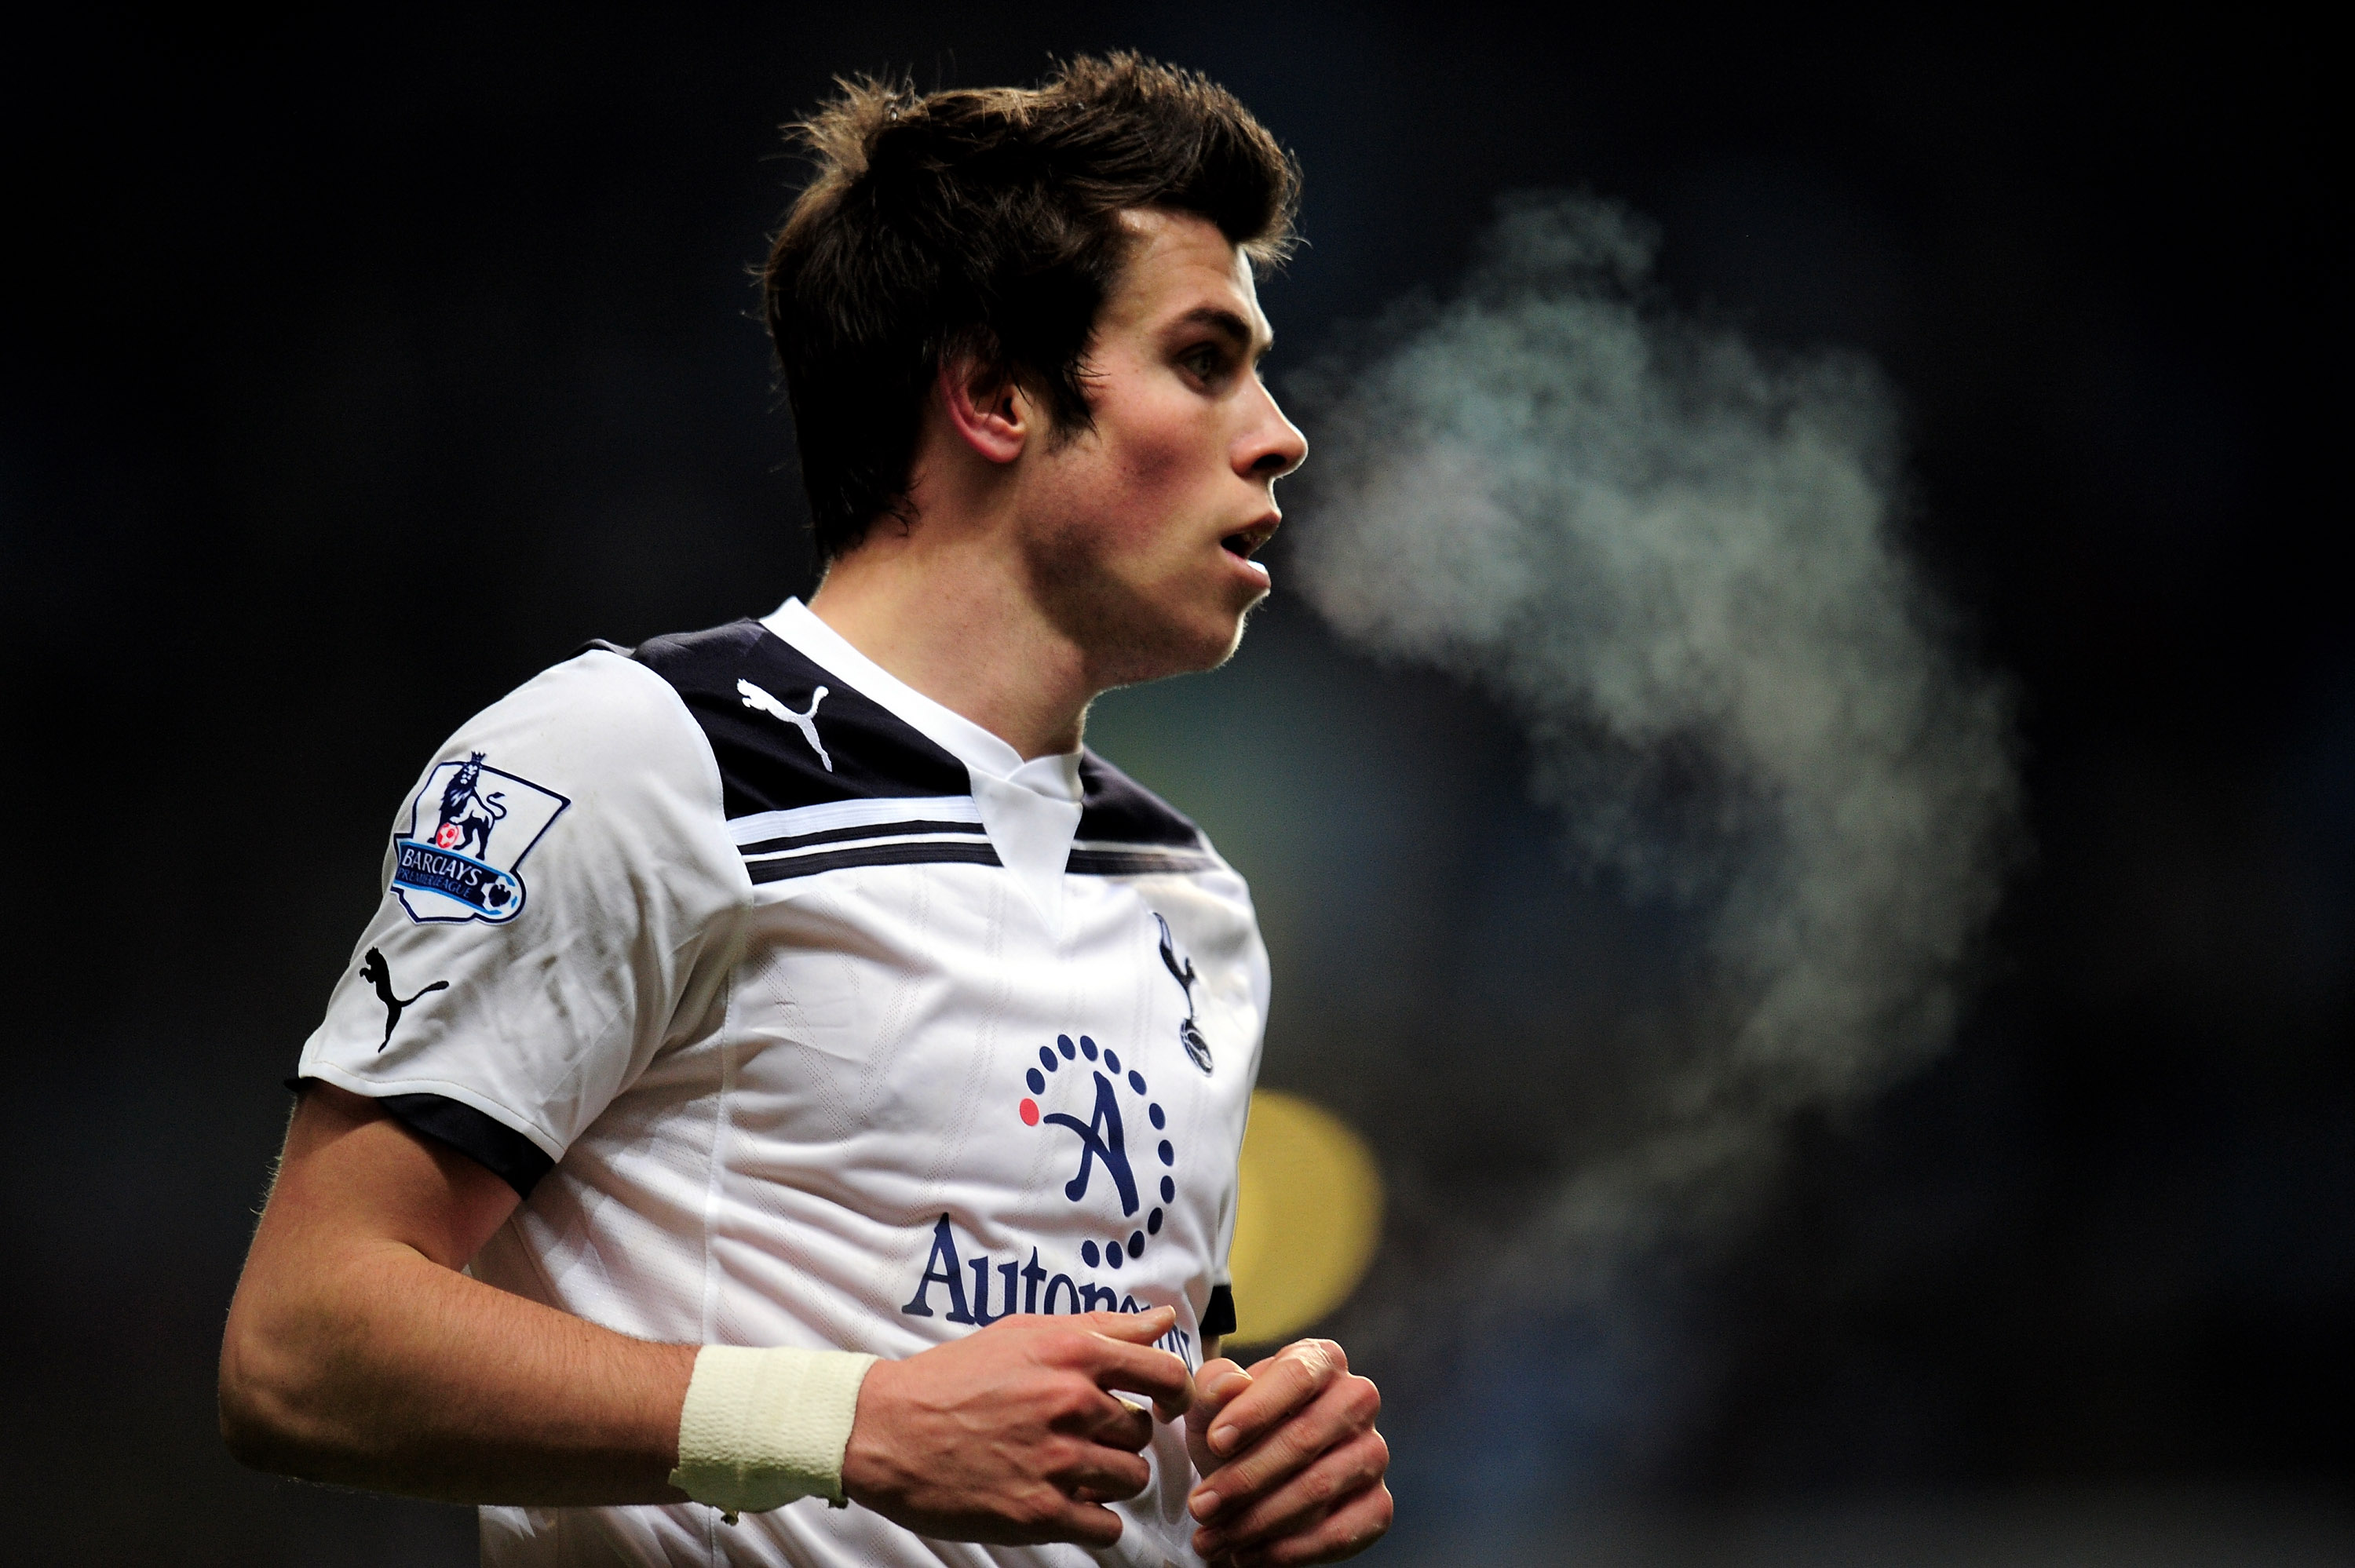 Was 2010 a freak year for Bale or is he here to stay?